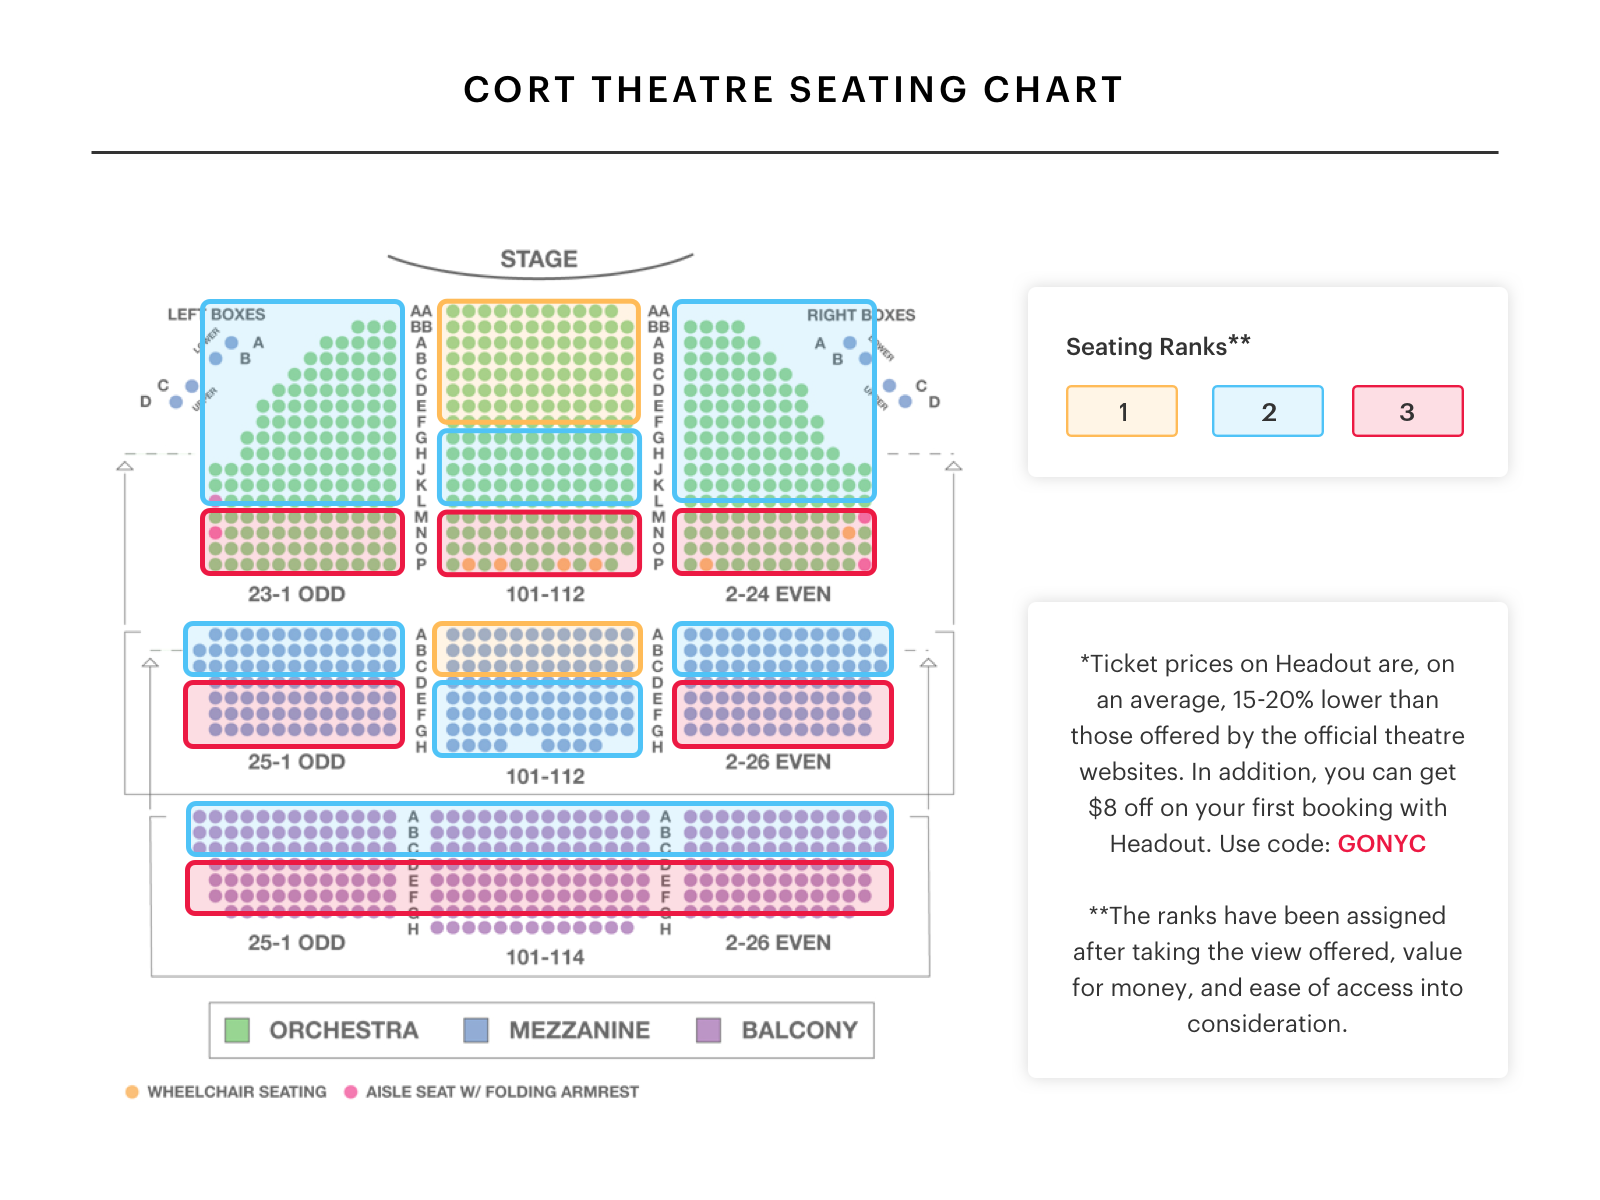 Cort theatre seating chart best seats pro tips and more